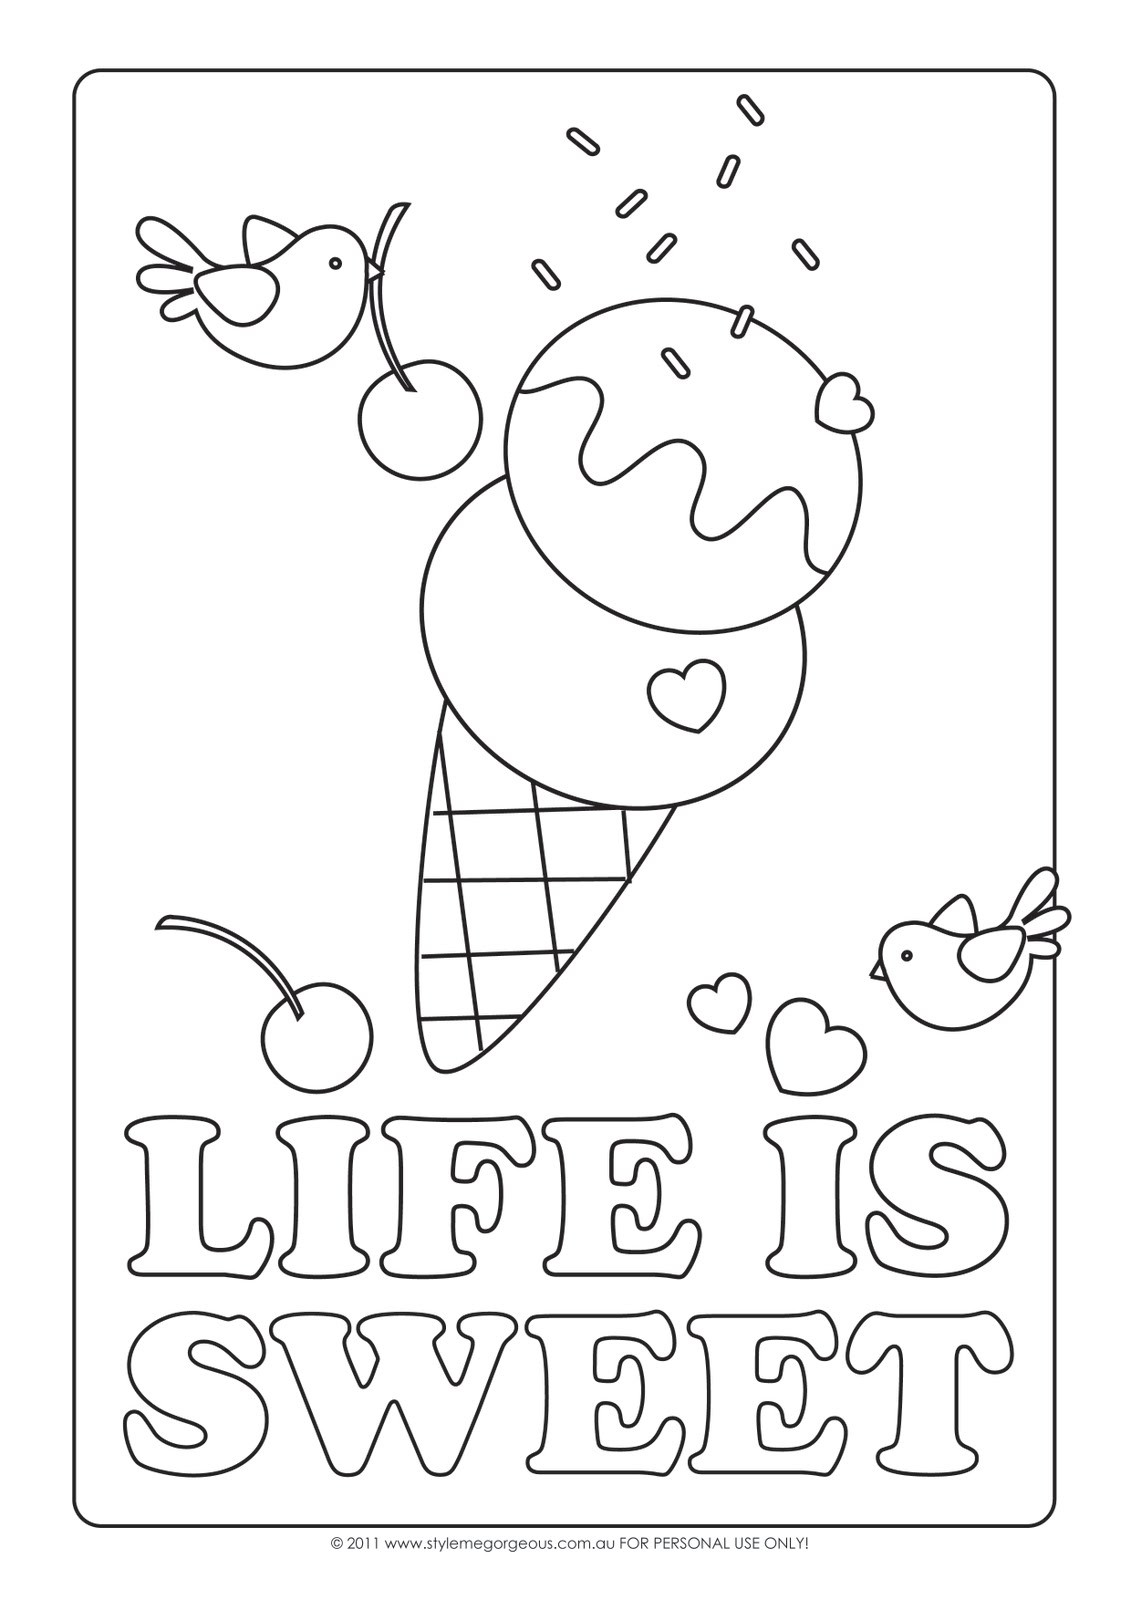 Coloring Pages For Girls 11 And Up  Simple Coloring Ice Cream Pages For Kids grig3